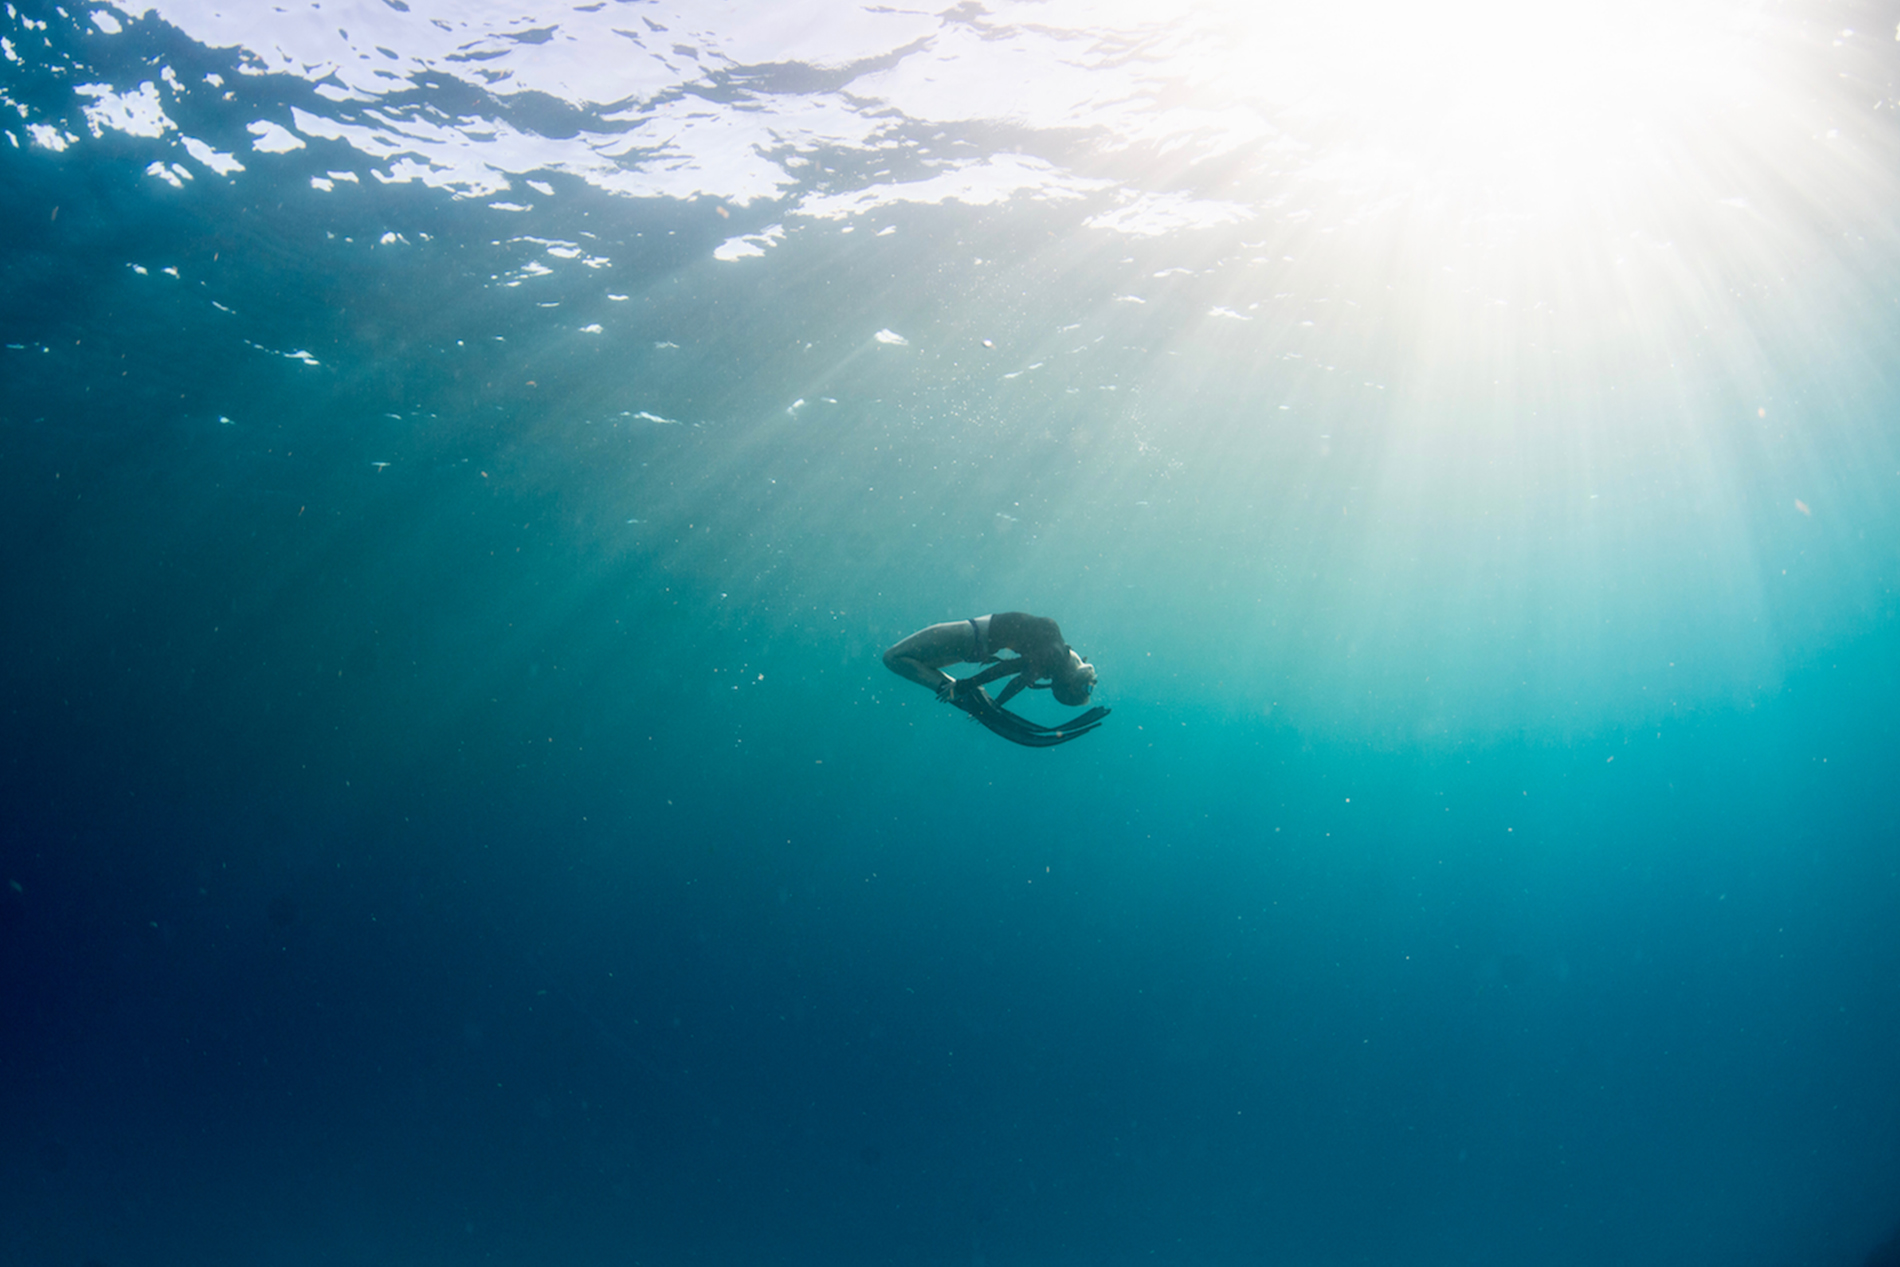 a young girl wearing a mask and flippers rests is suspended in the ocean, freediving